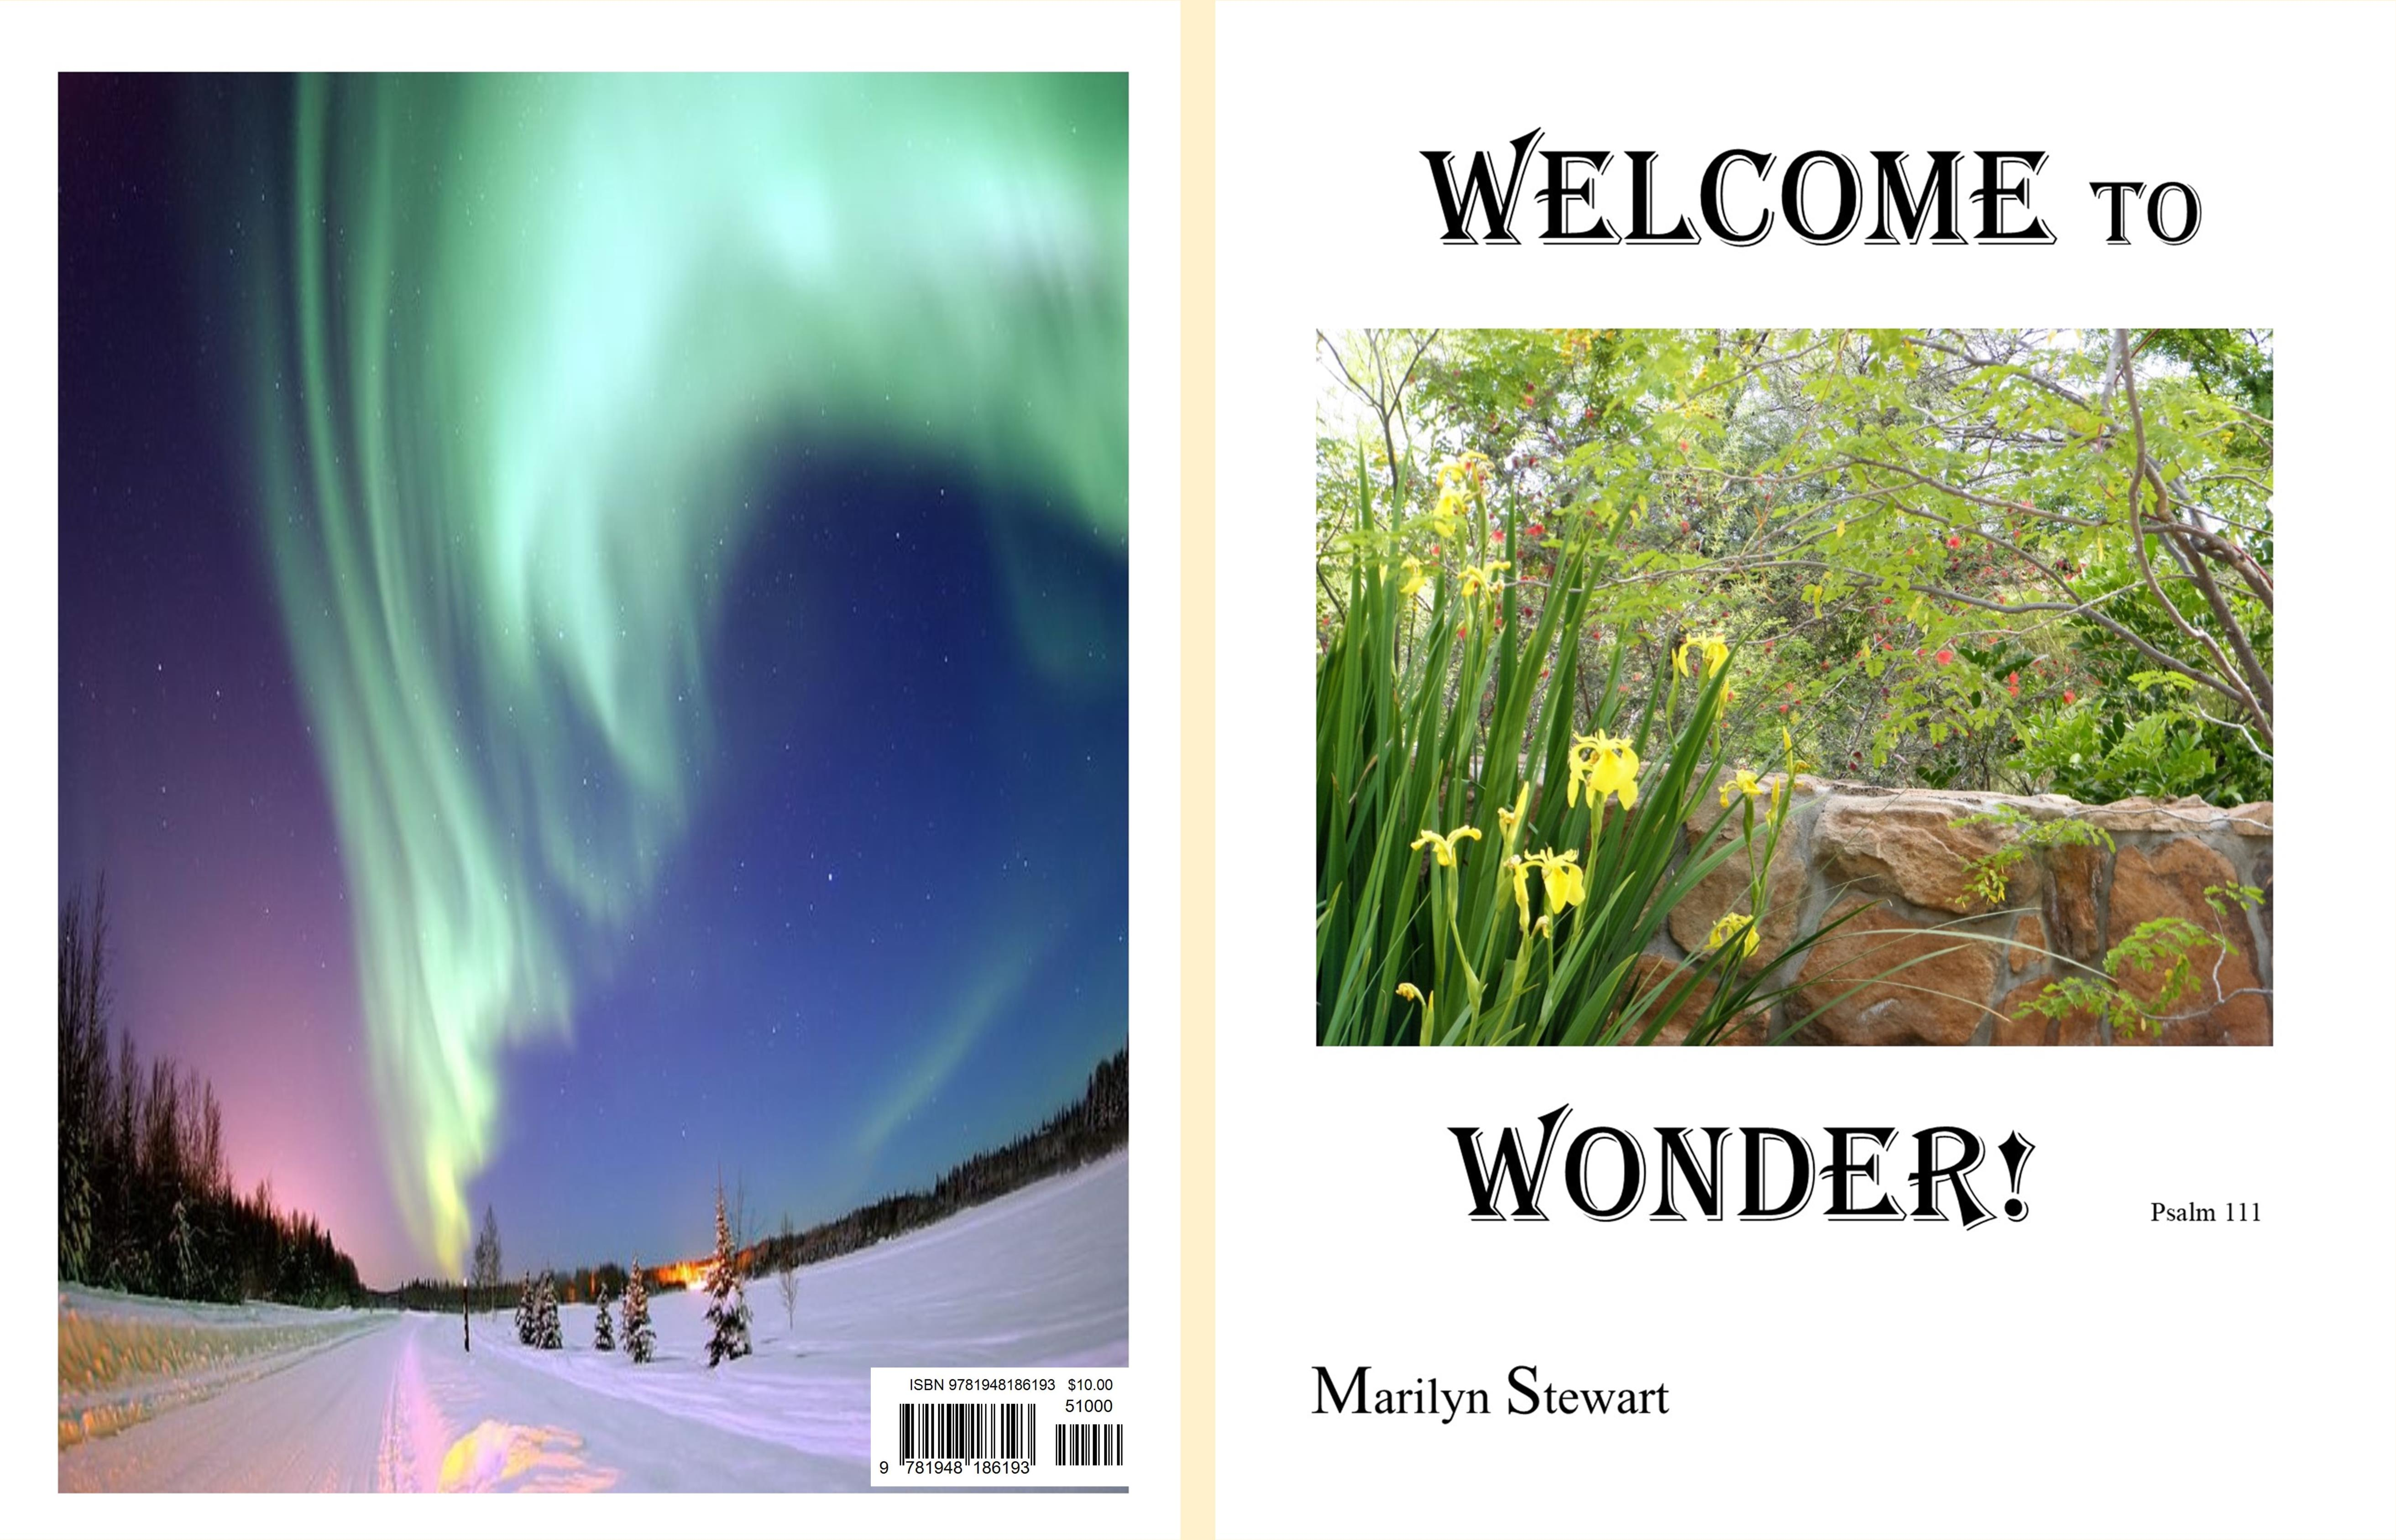 Welcome to Wonder cover image